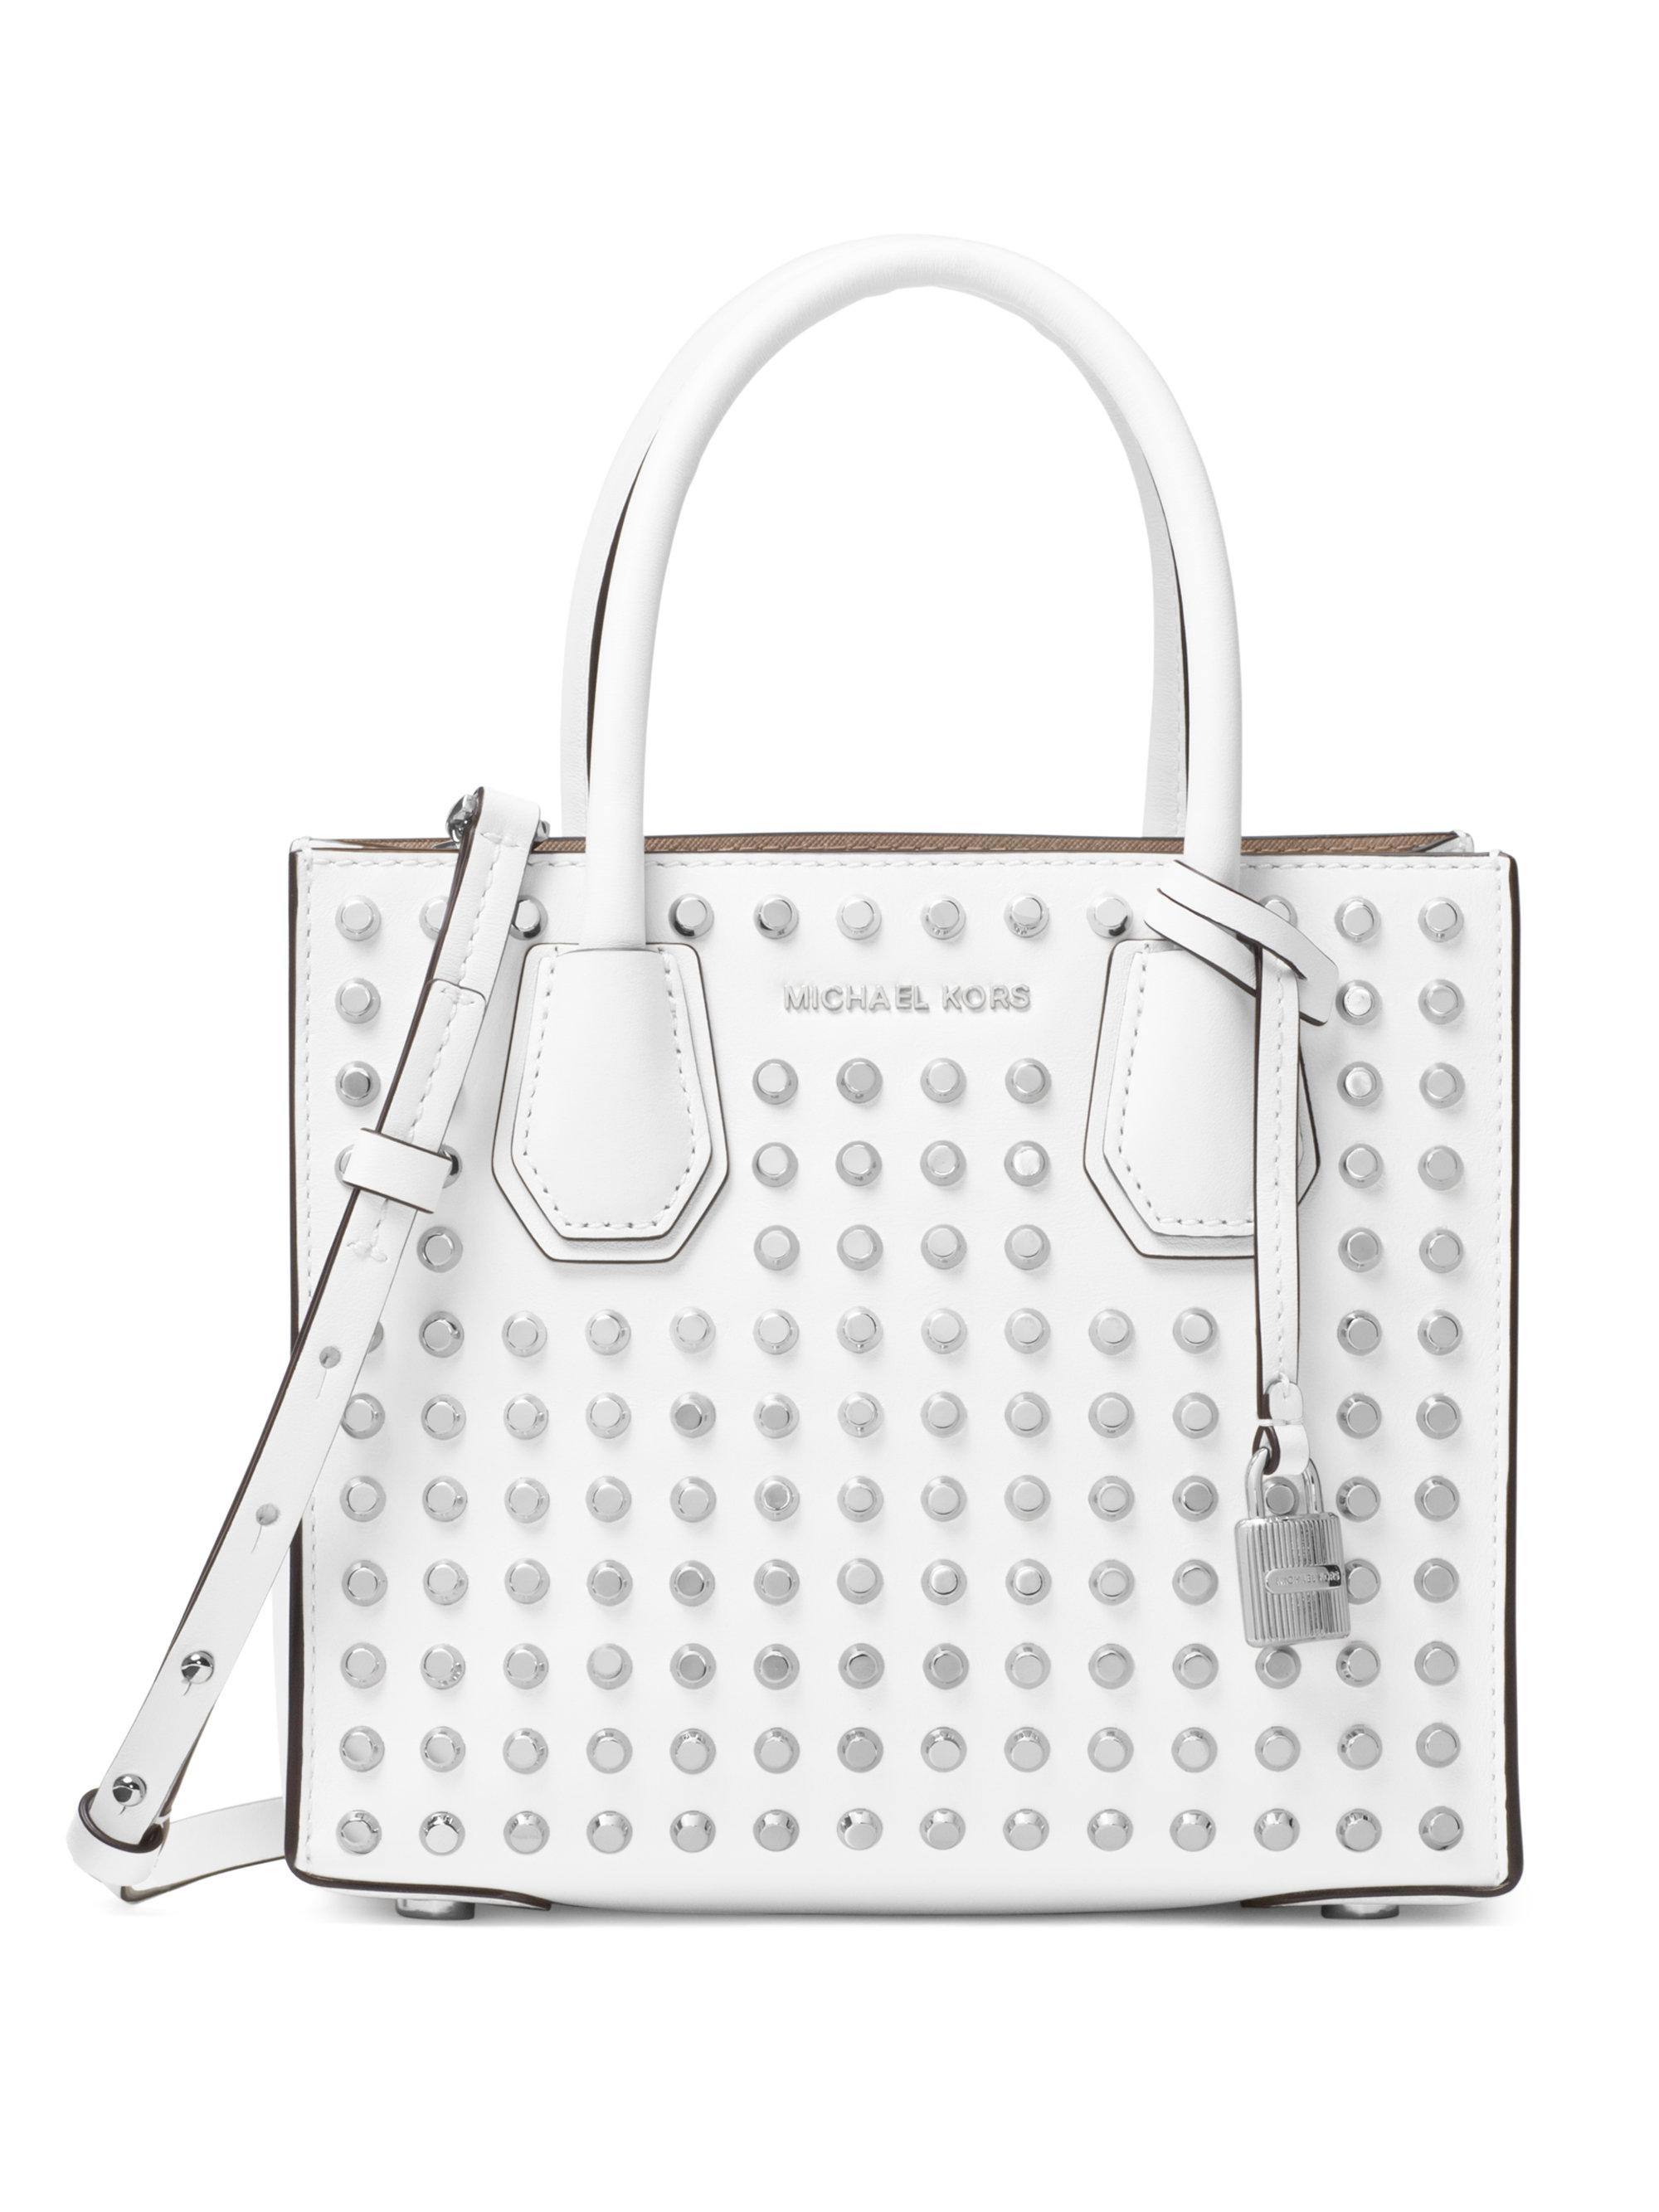 32ae0c88a265 Gallery. Previously sold at: Saks Fifth Avenue · Women's Leather Messenger  Bags